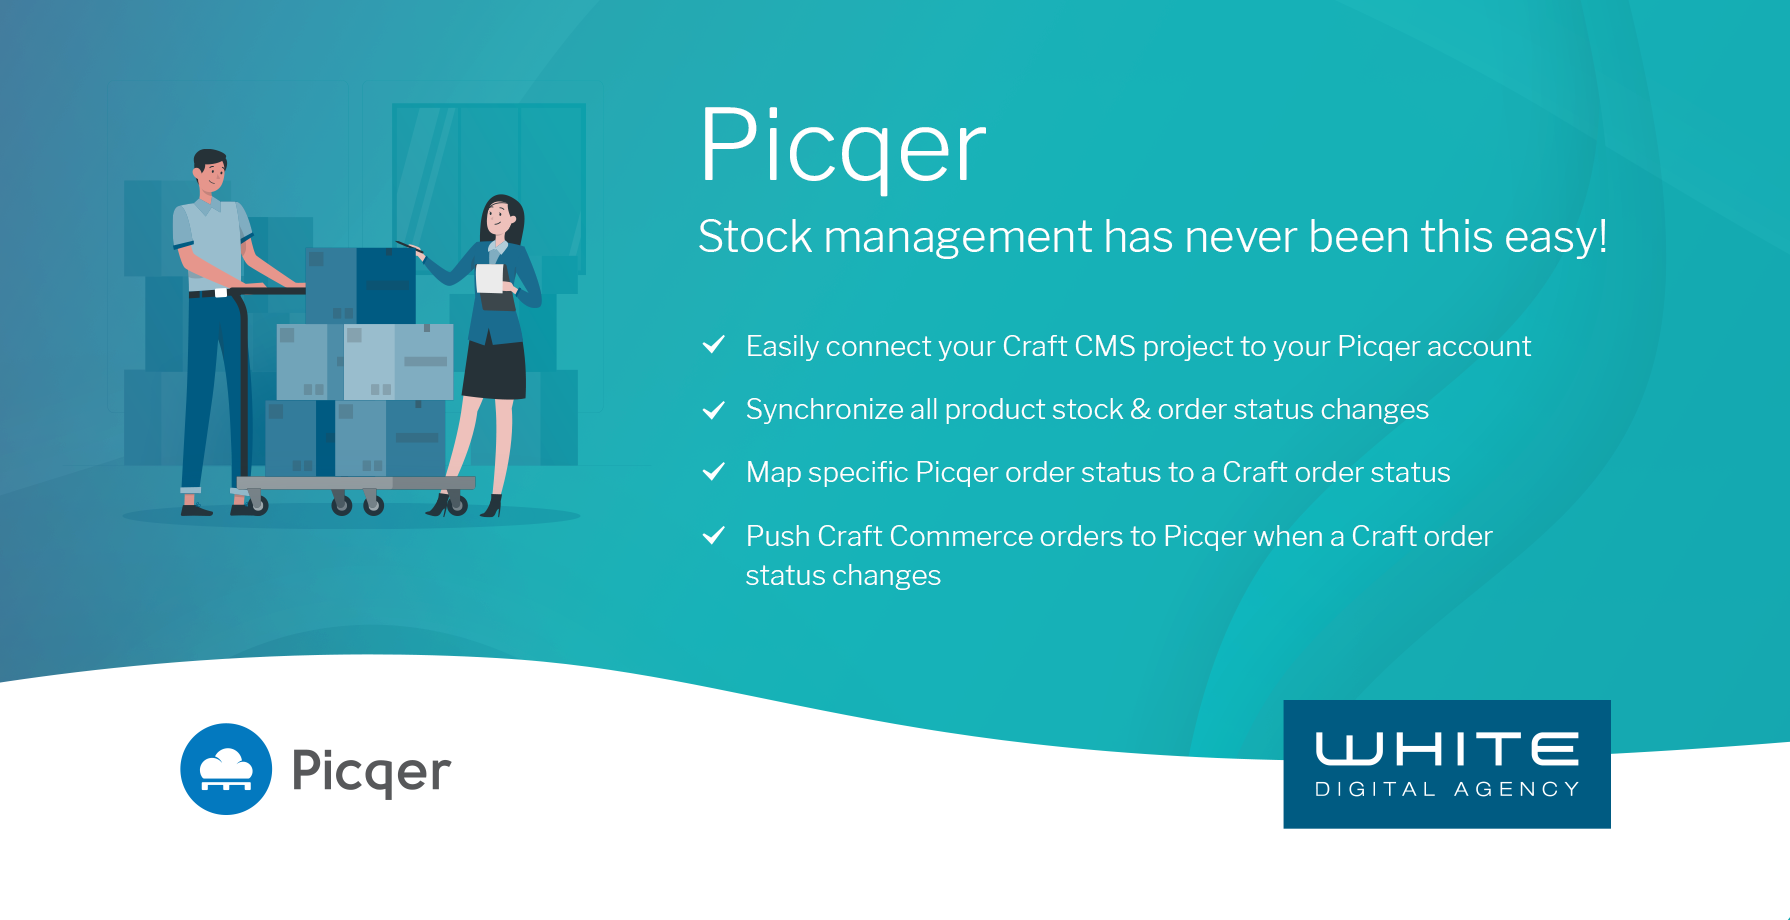 Picqer plugin - Stock management has never been this easy!